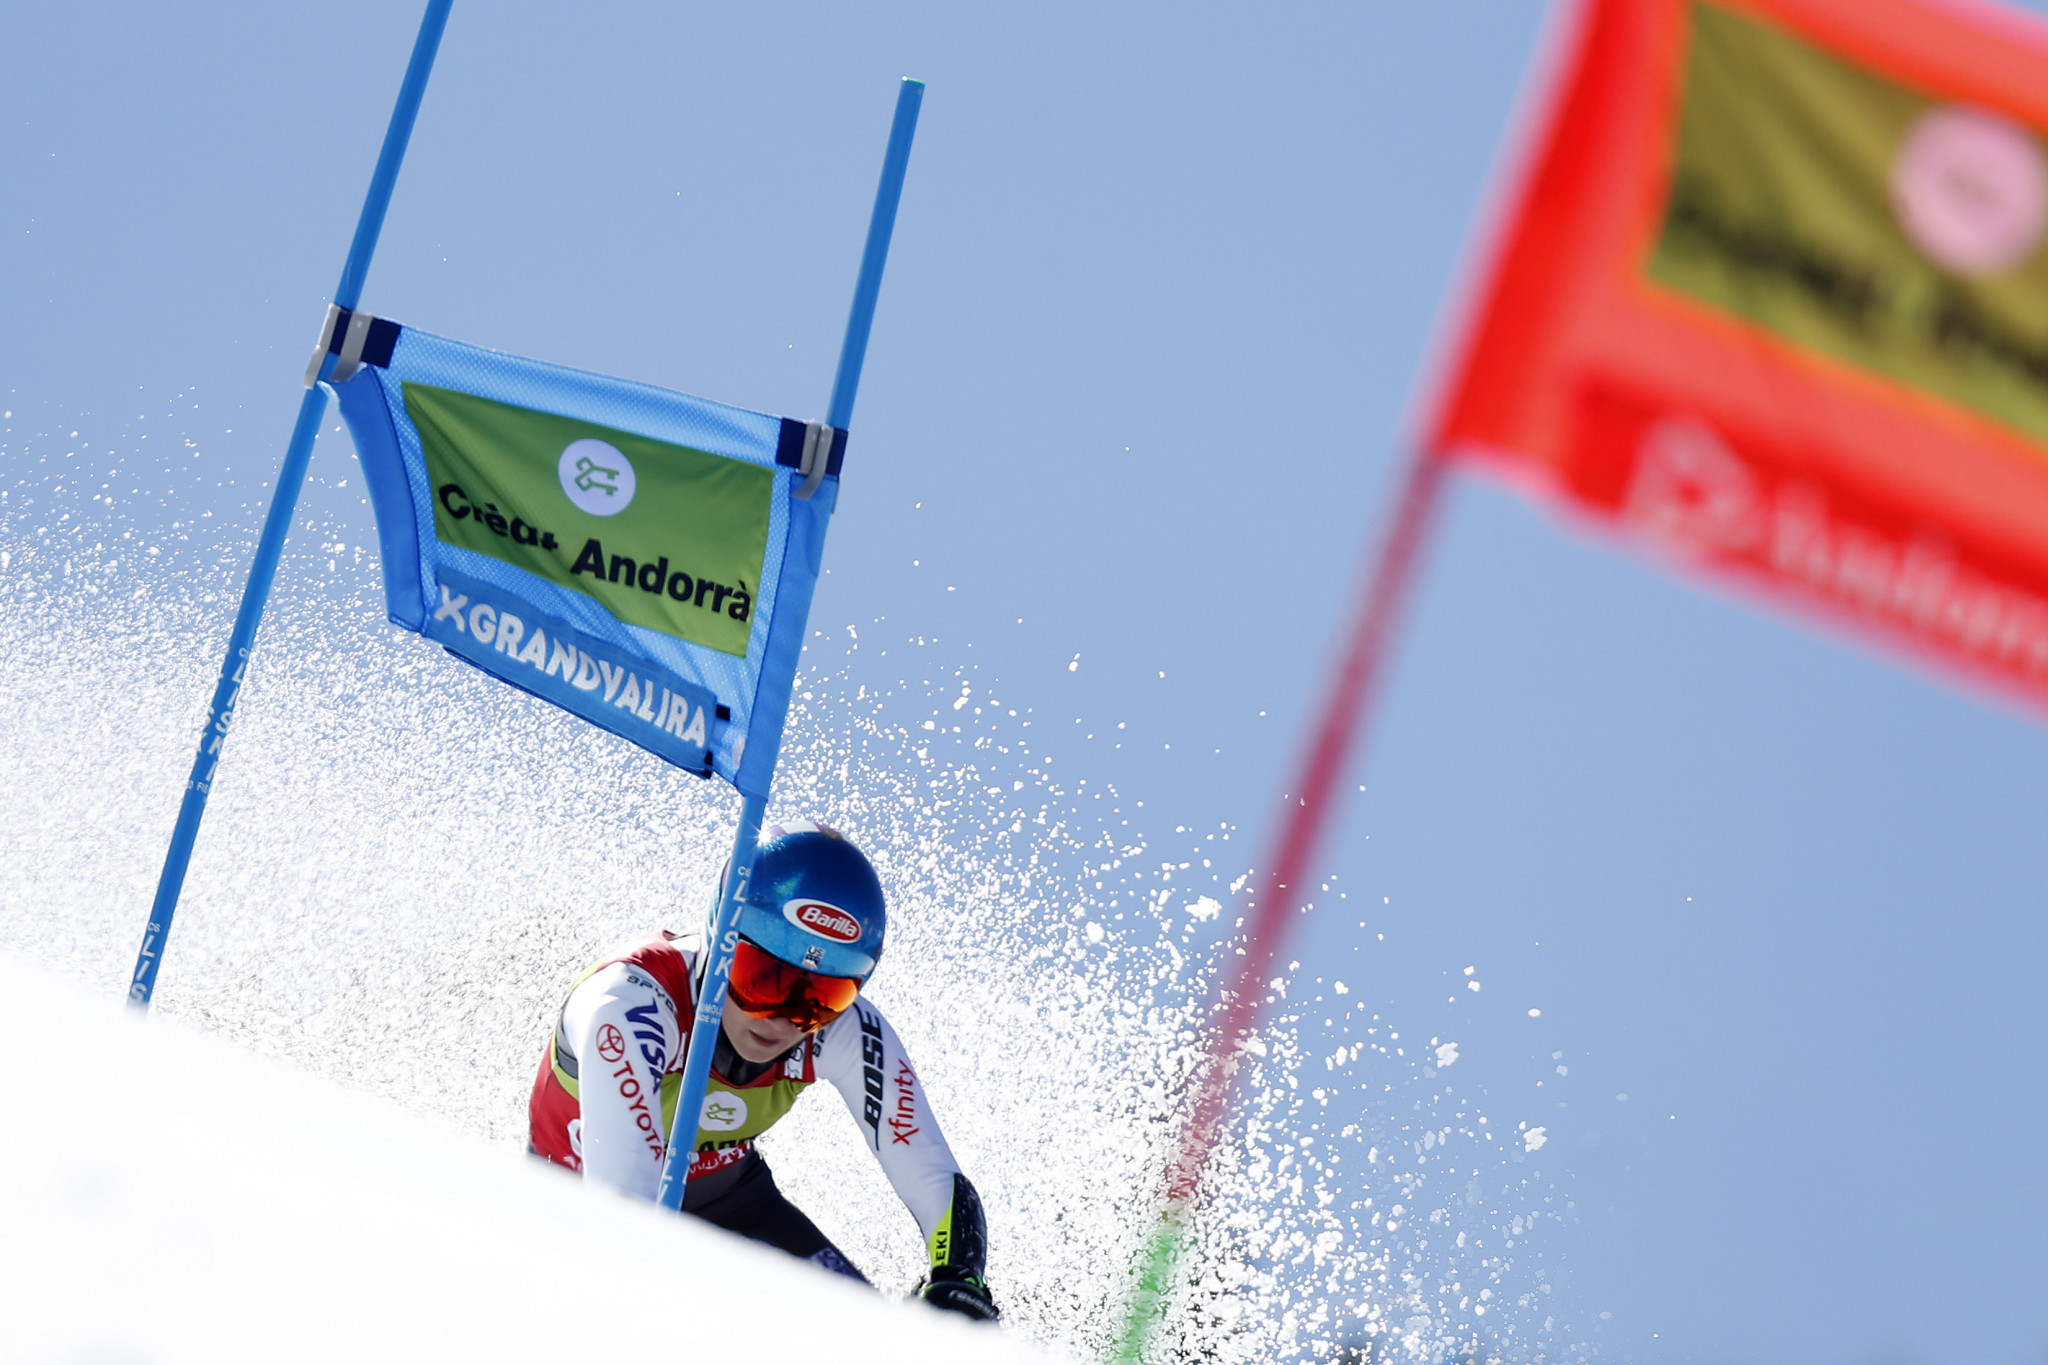 Giant slalom skier Michaela Shiffrin from the United States was one of many top names who competed at the International Ski Federation World Cup event in Aspen Snowmass in 2017 ©Getty Images